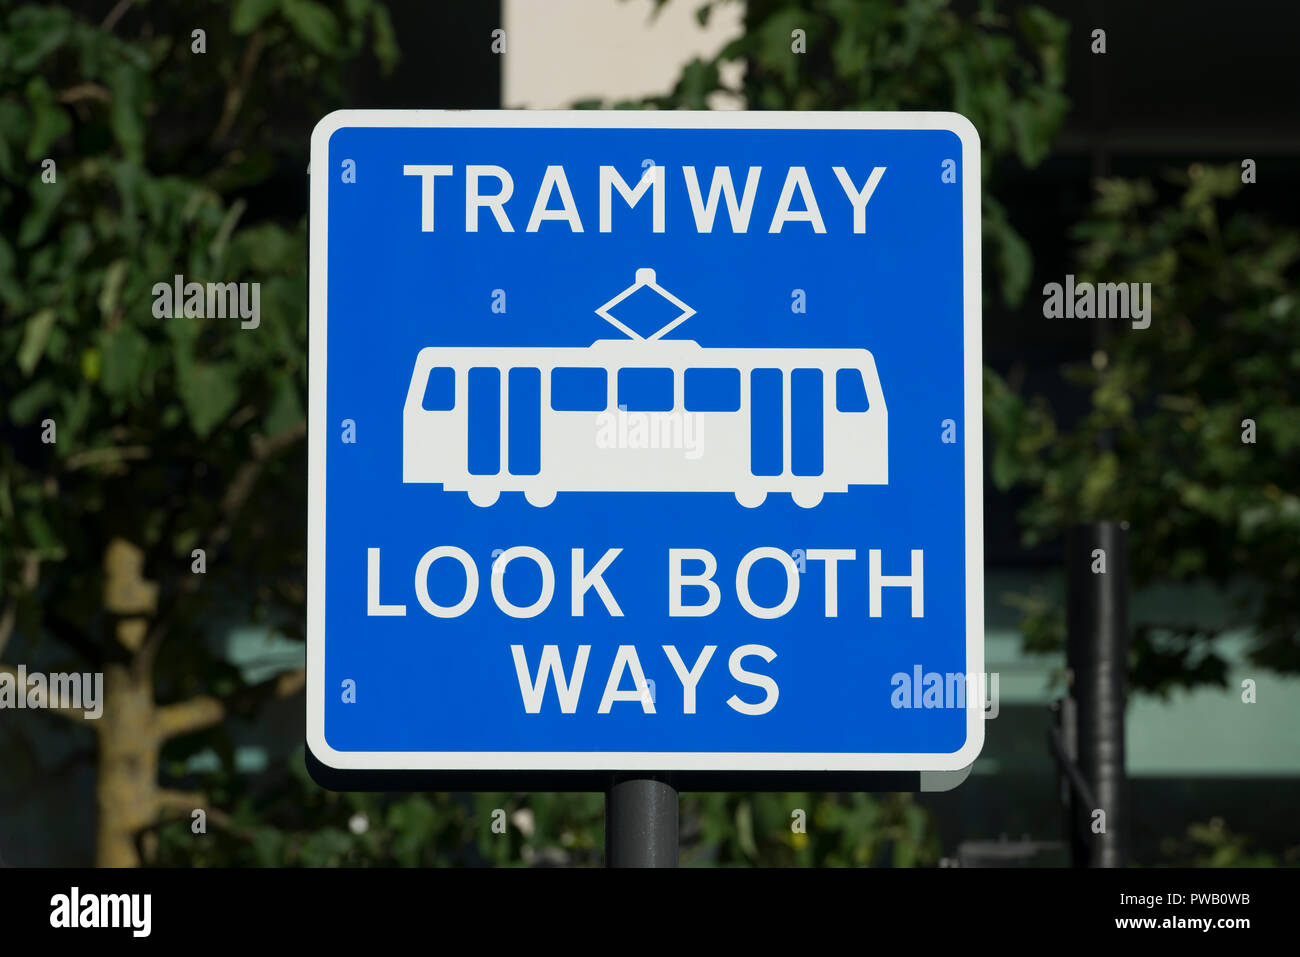 A sign reads 'Tramway Look Both Ways' in St Peter's square in Manchester, referring to the city's Metrolink system. - Stock Image